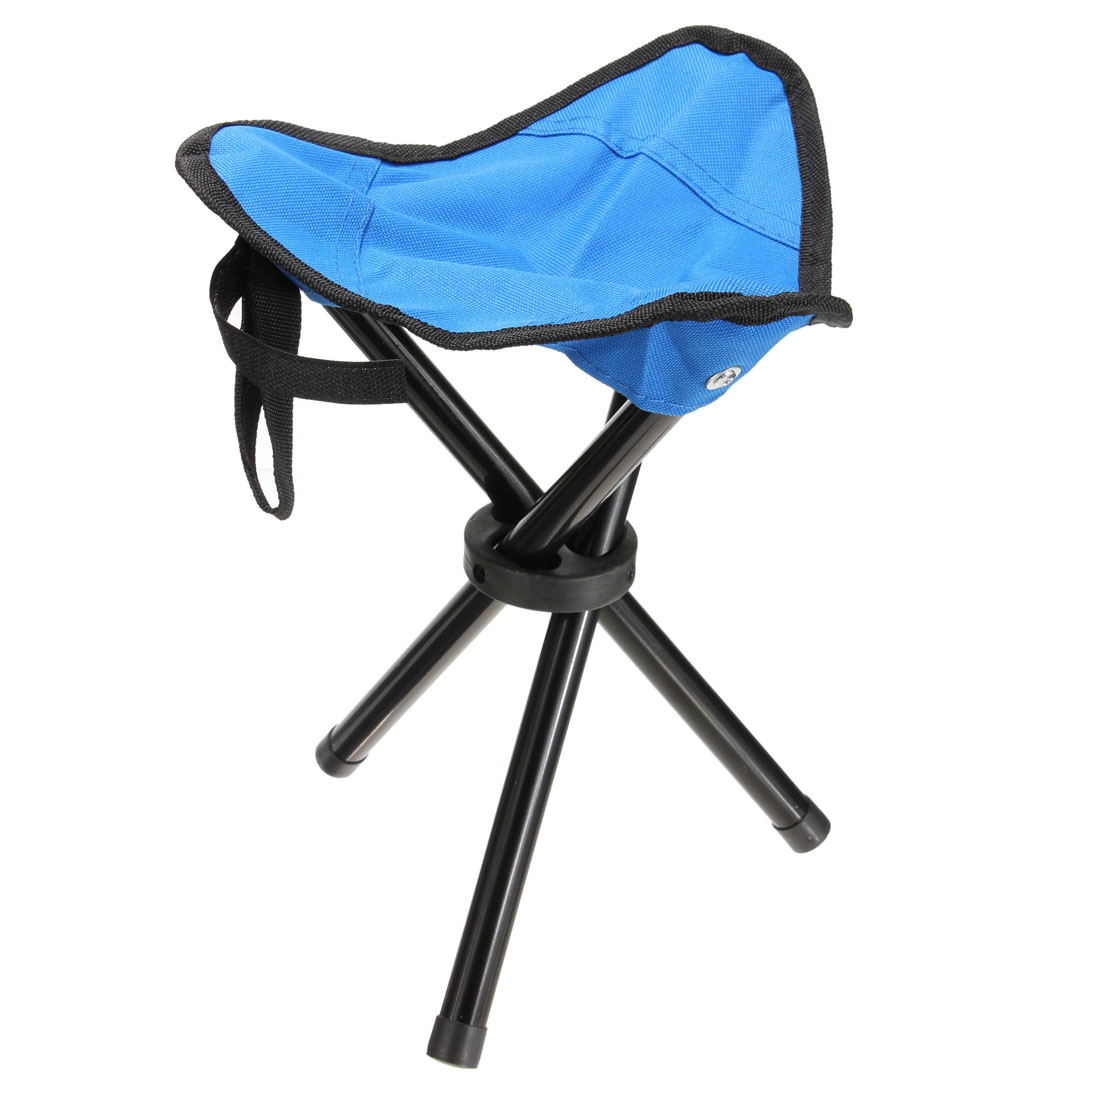 camping with a practical carrying strap the beach com-four/® tripod folding stool folding camping chair fishing and festivals ideal for holidays